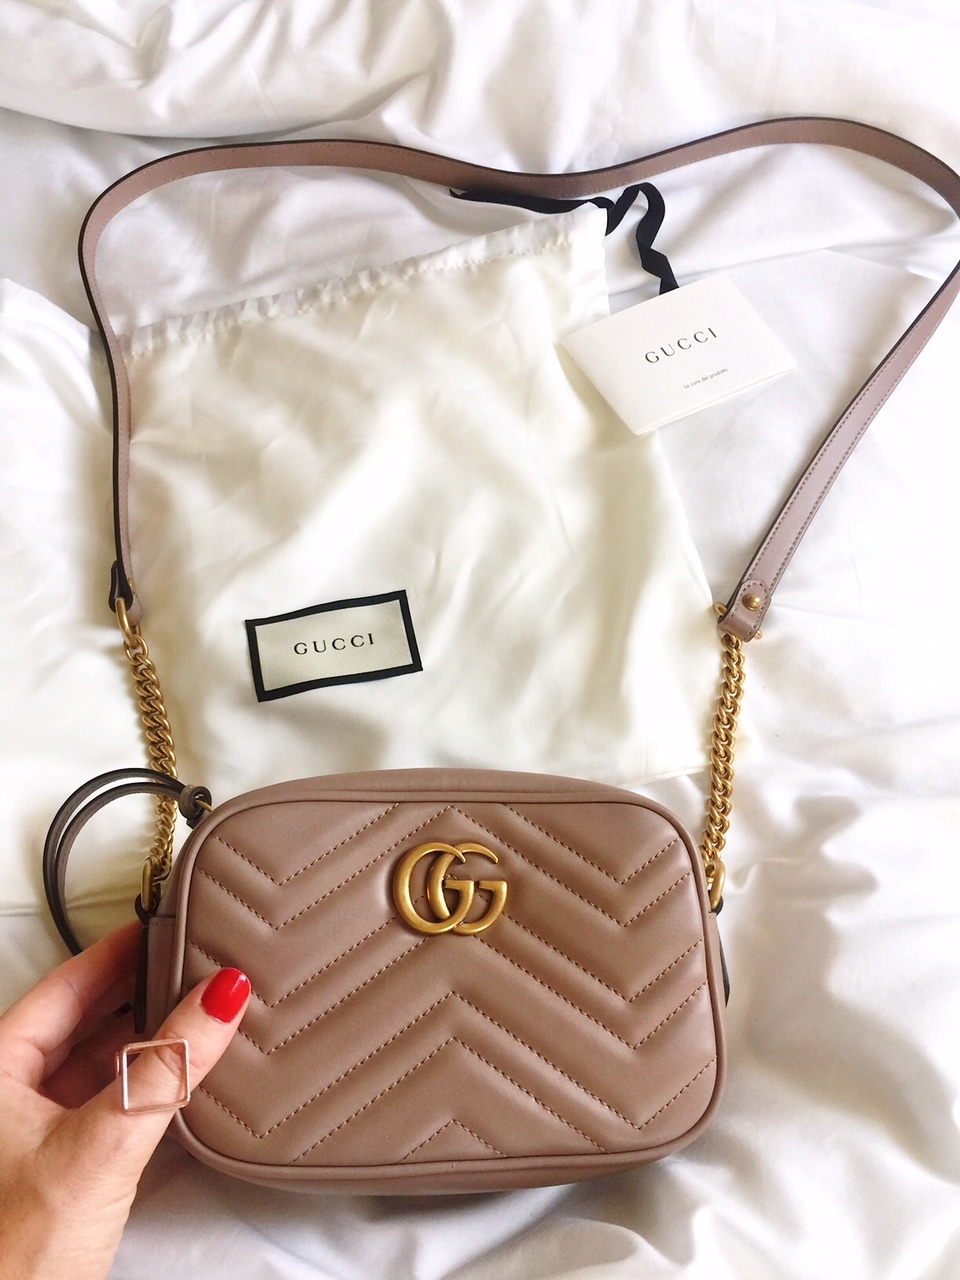 a50effd7d5a4 Gucci Disco Bag Price Dubai | Stanford Center for Opportunity Policy ...